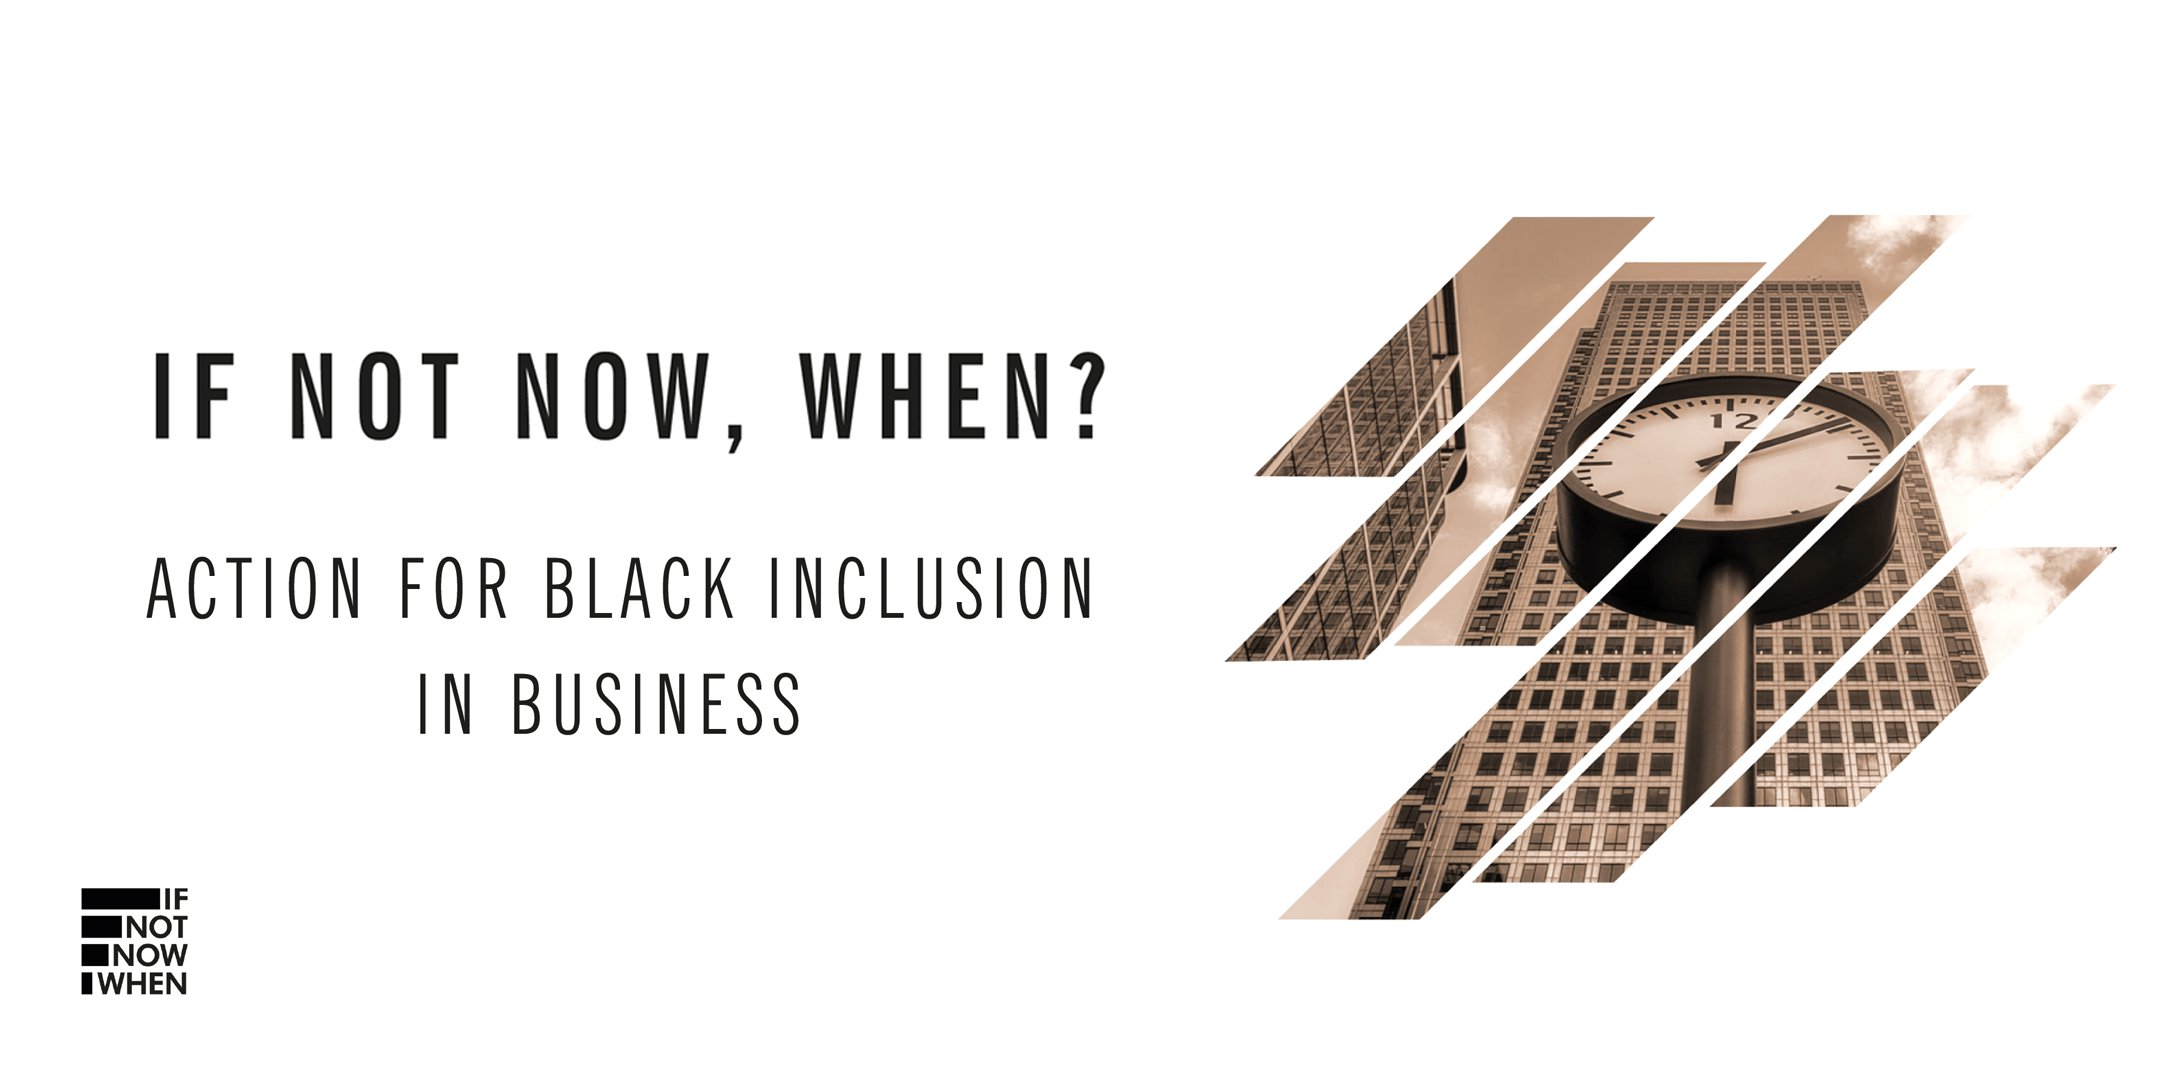 If Not Now, When? Report: Action for Black Inclusion in Business